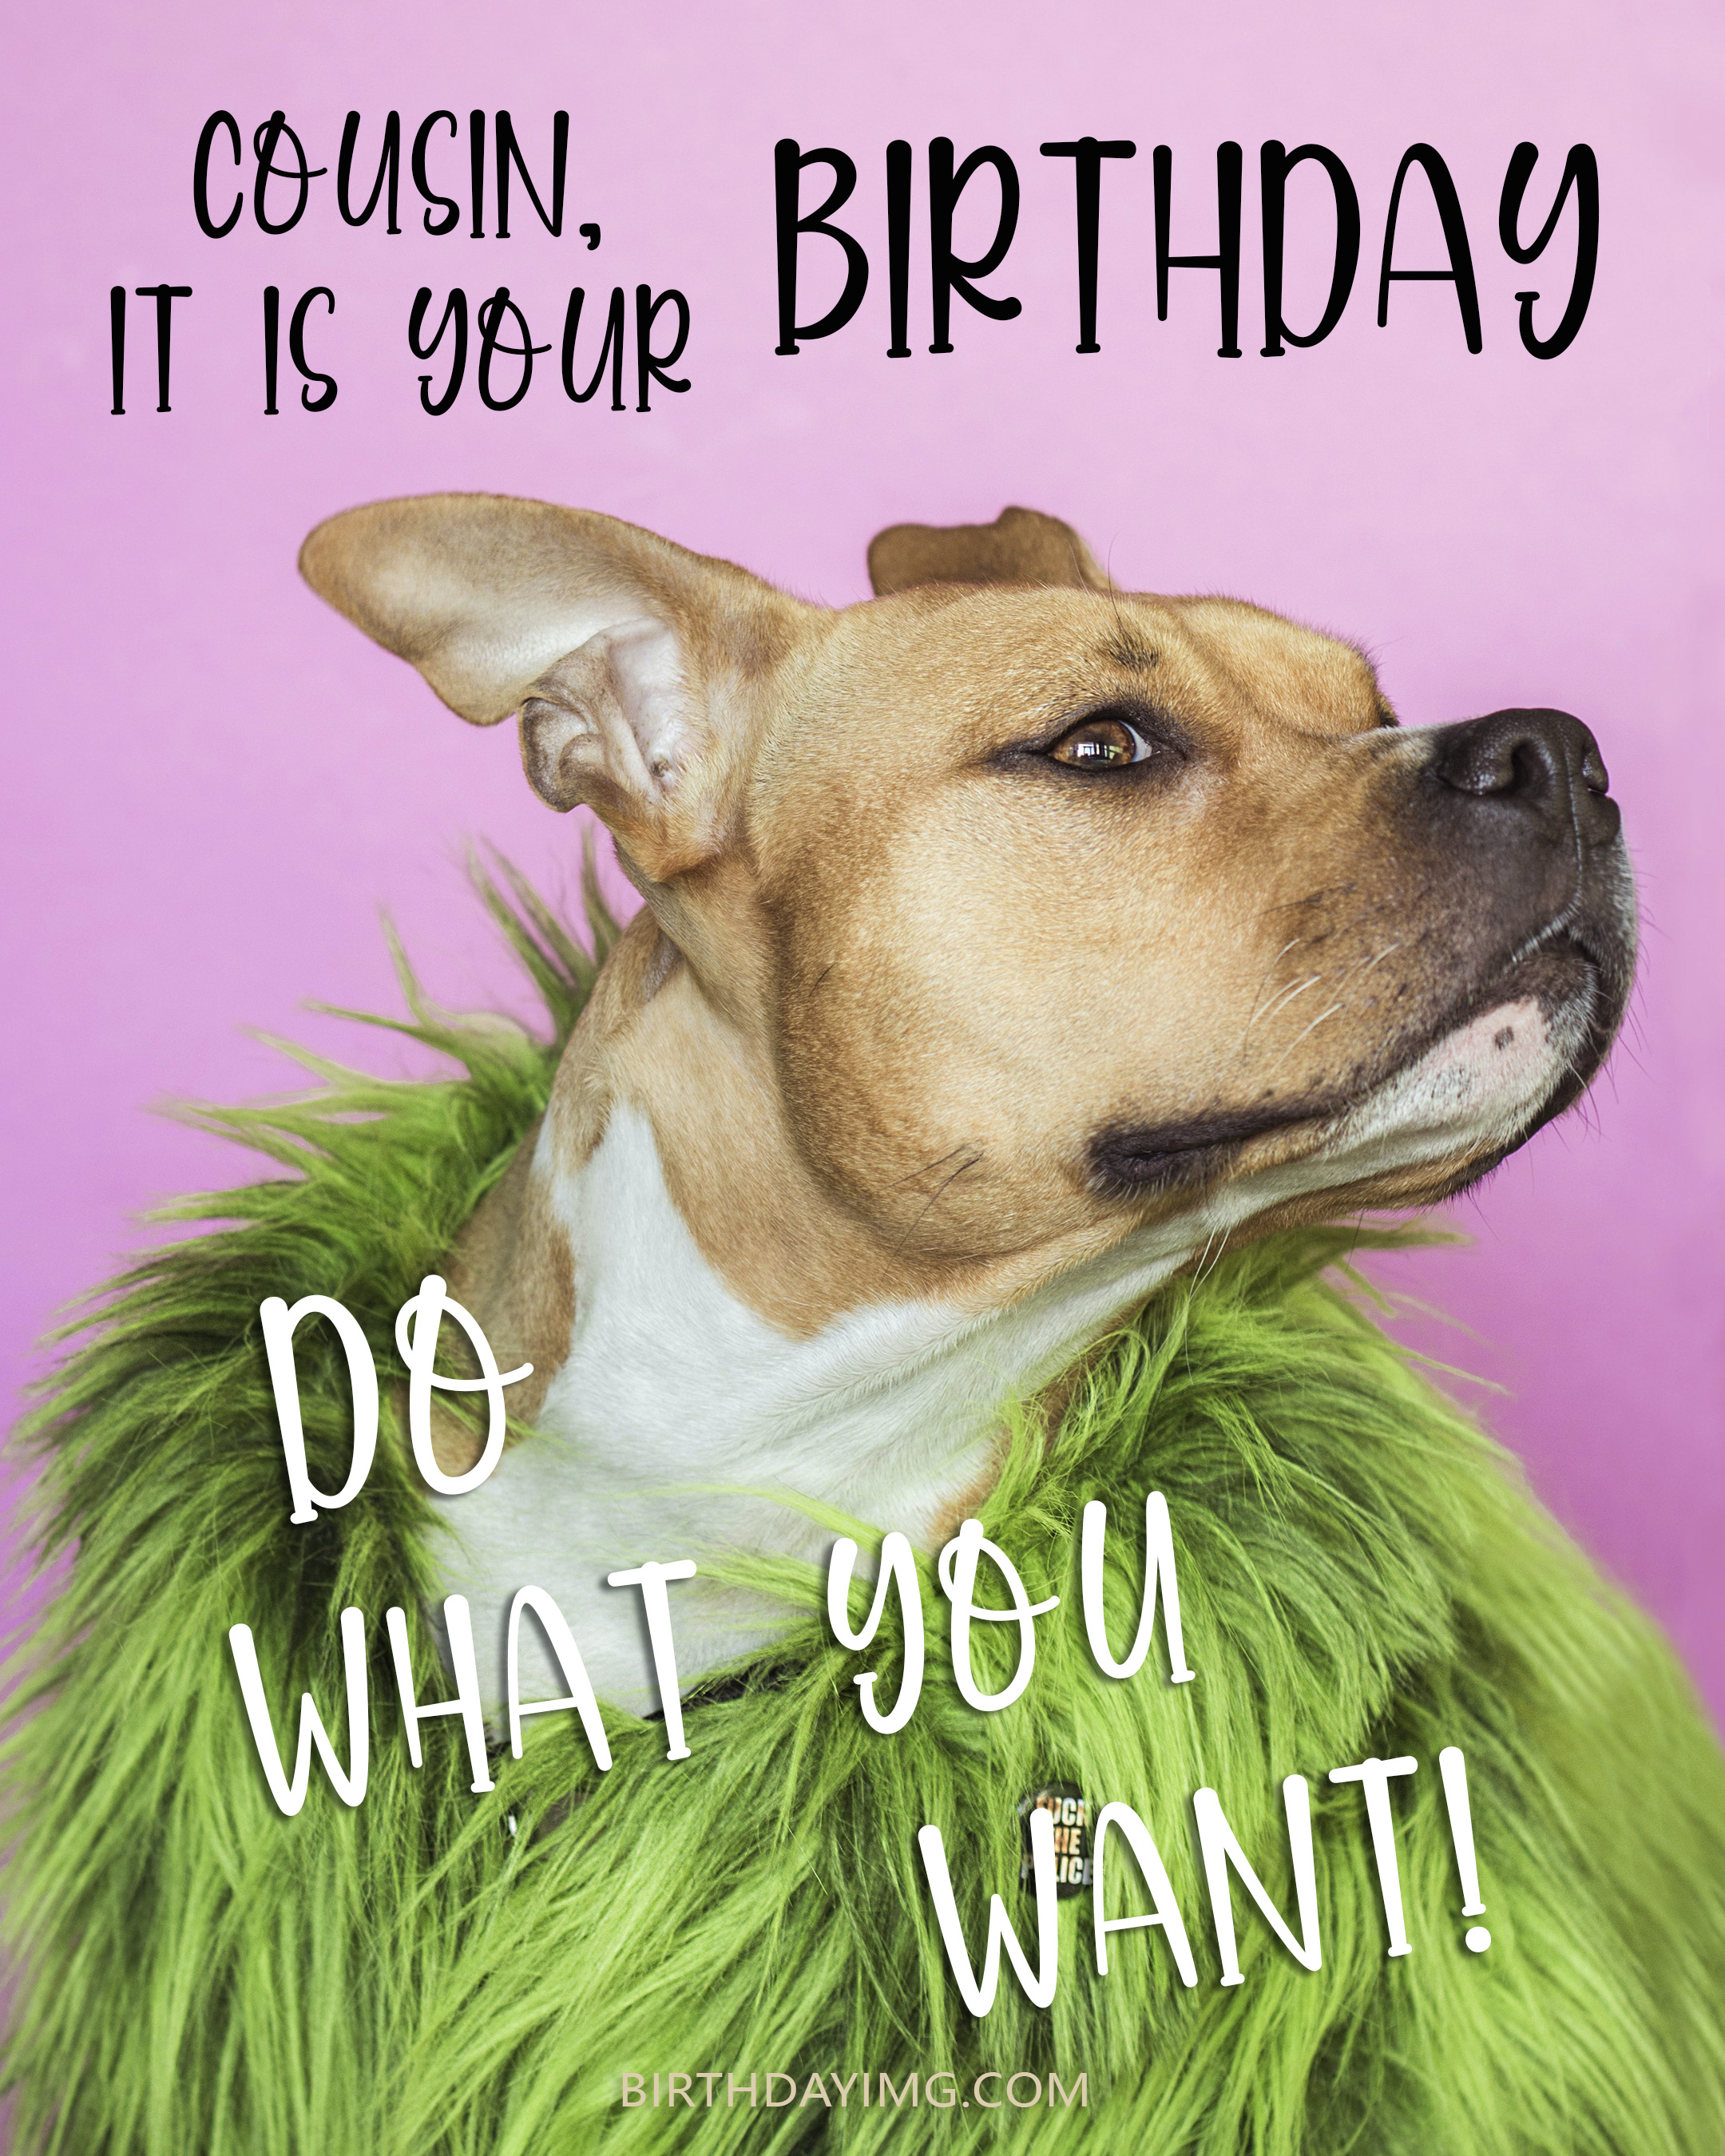 Free Birthday Image For Cousin With Dog on Pink Background - birthdayimg.com